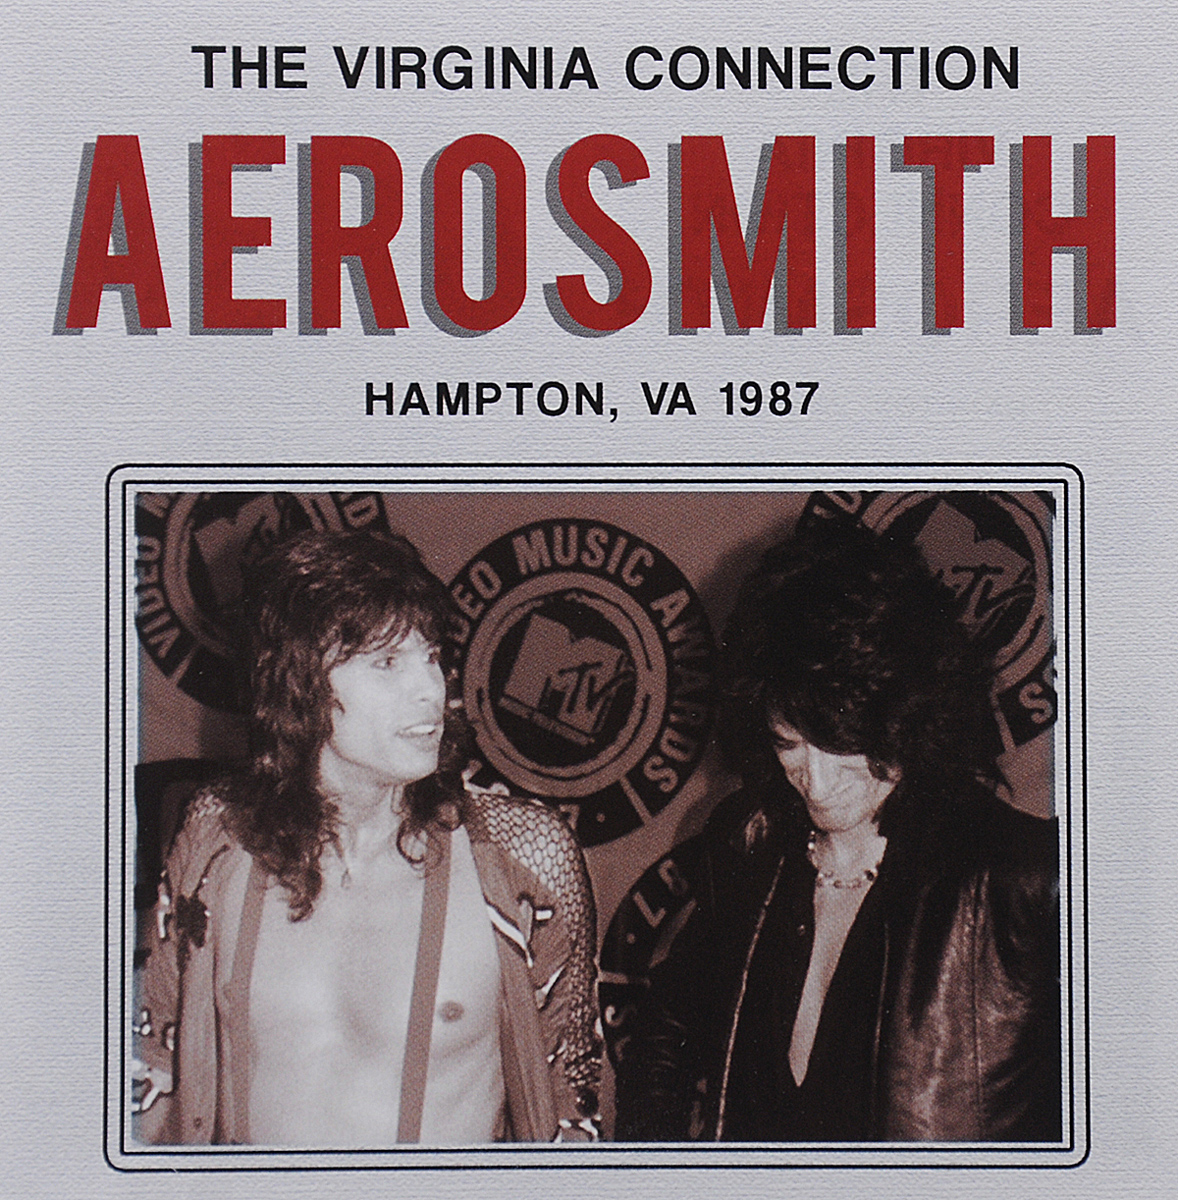 Aerosmith Aerosmith. The Virginia Connection sonic boom